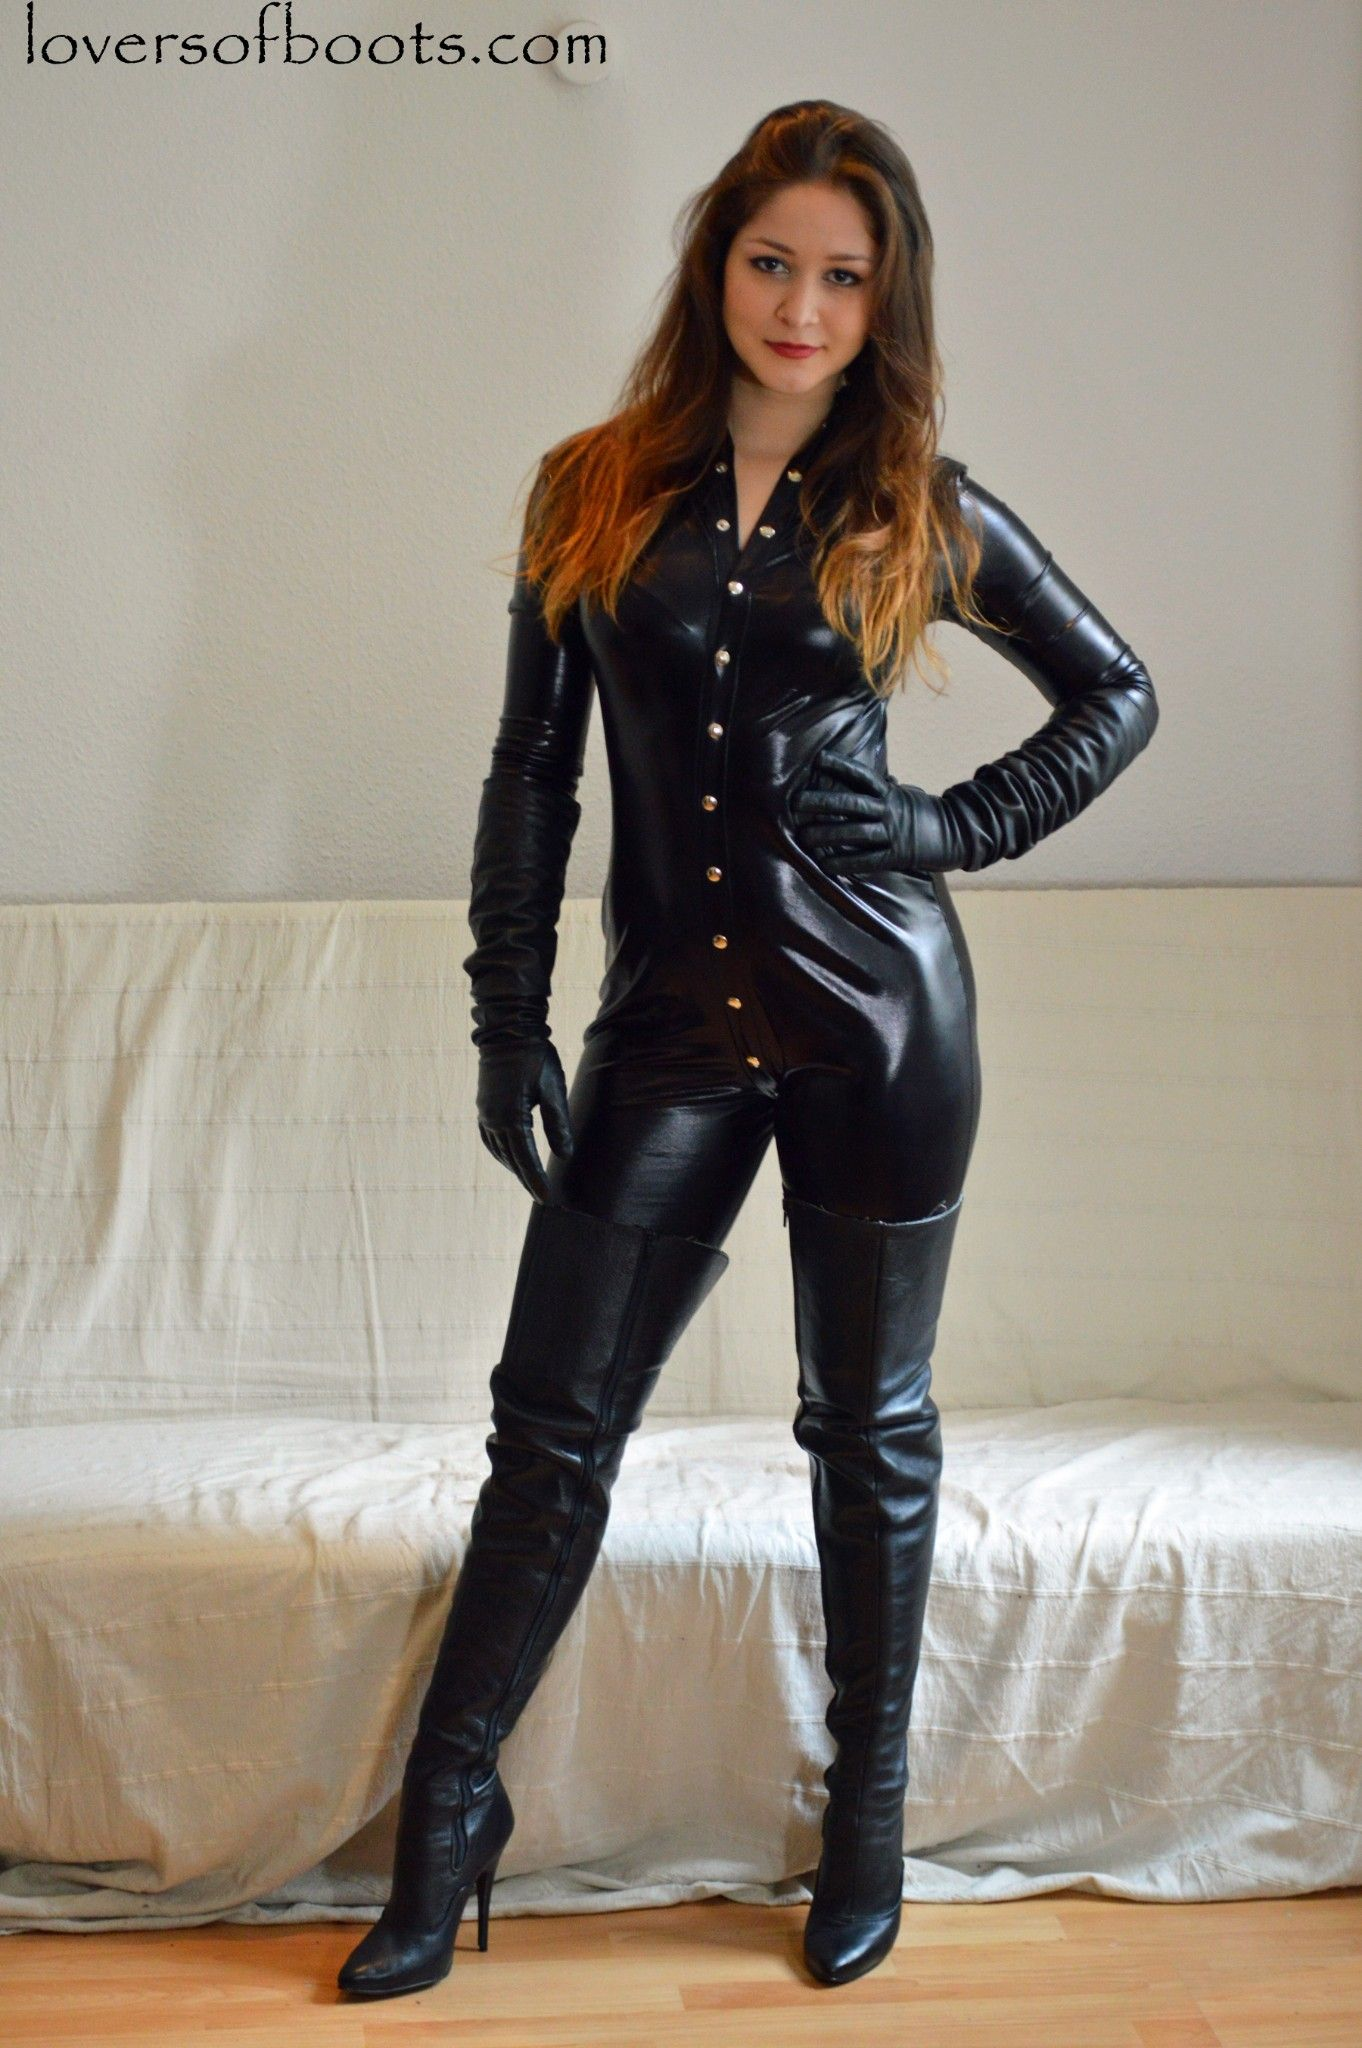 * leather | Leather | Pinterest | Leather, Latex and ...